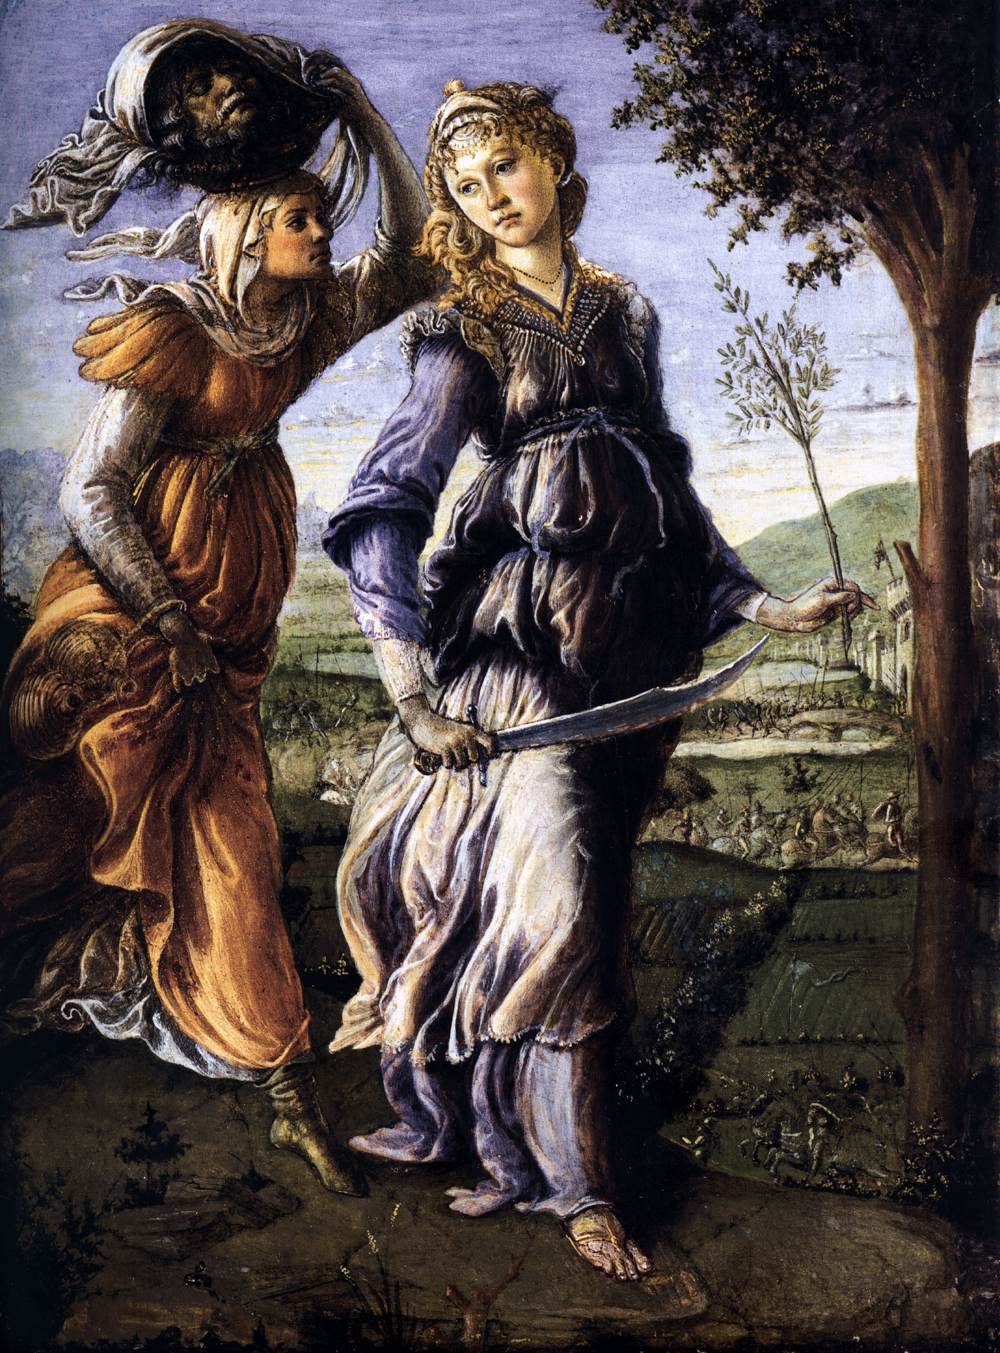 Botticelli - Return of Judith, (CC-BY-SA), http://upload.wikimedia.org/wikipedia/commons/c/cd/Botticelli_-_Return_of_Judith.jpg